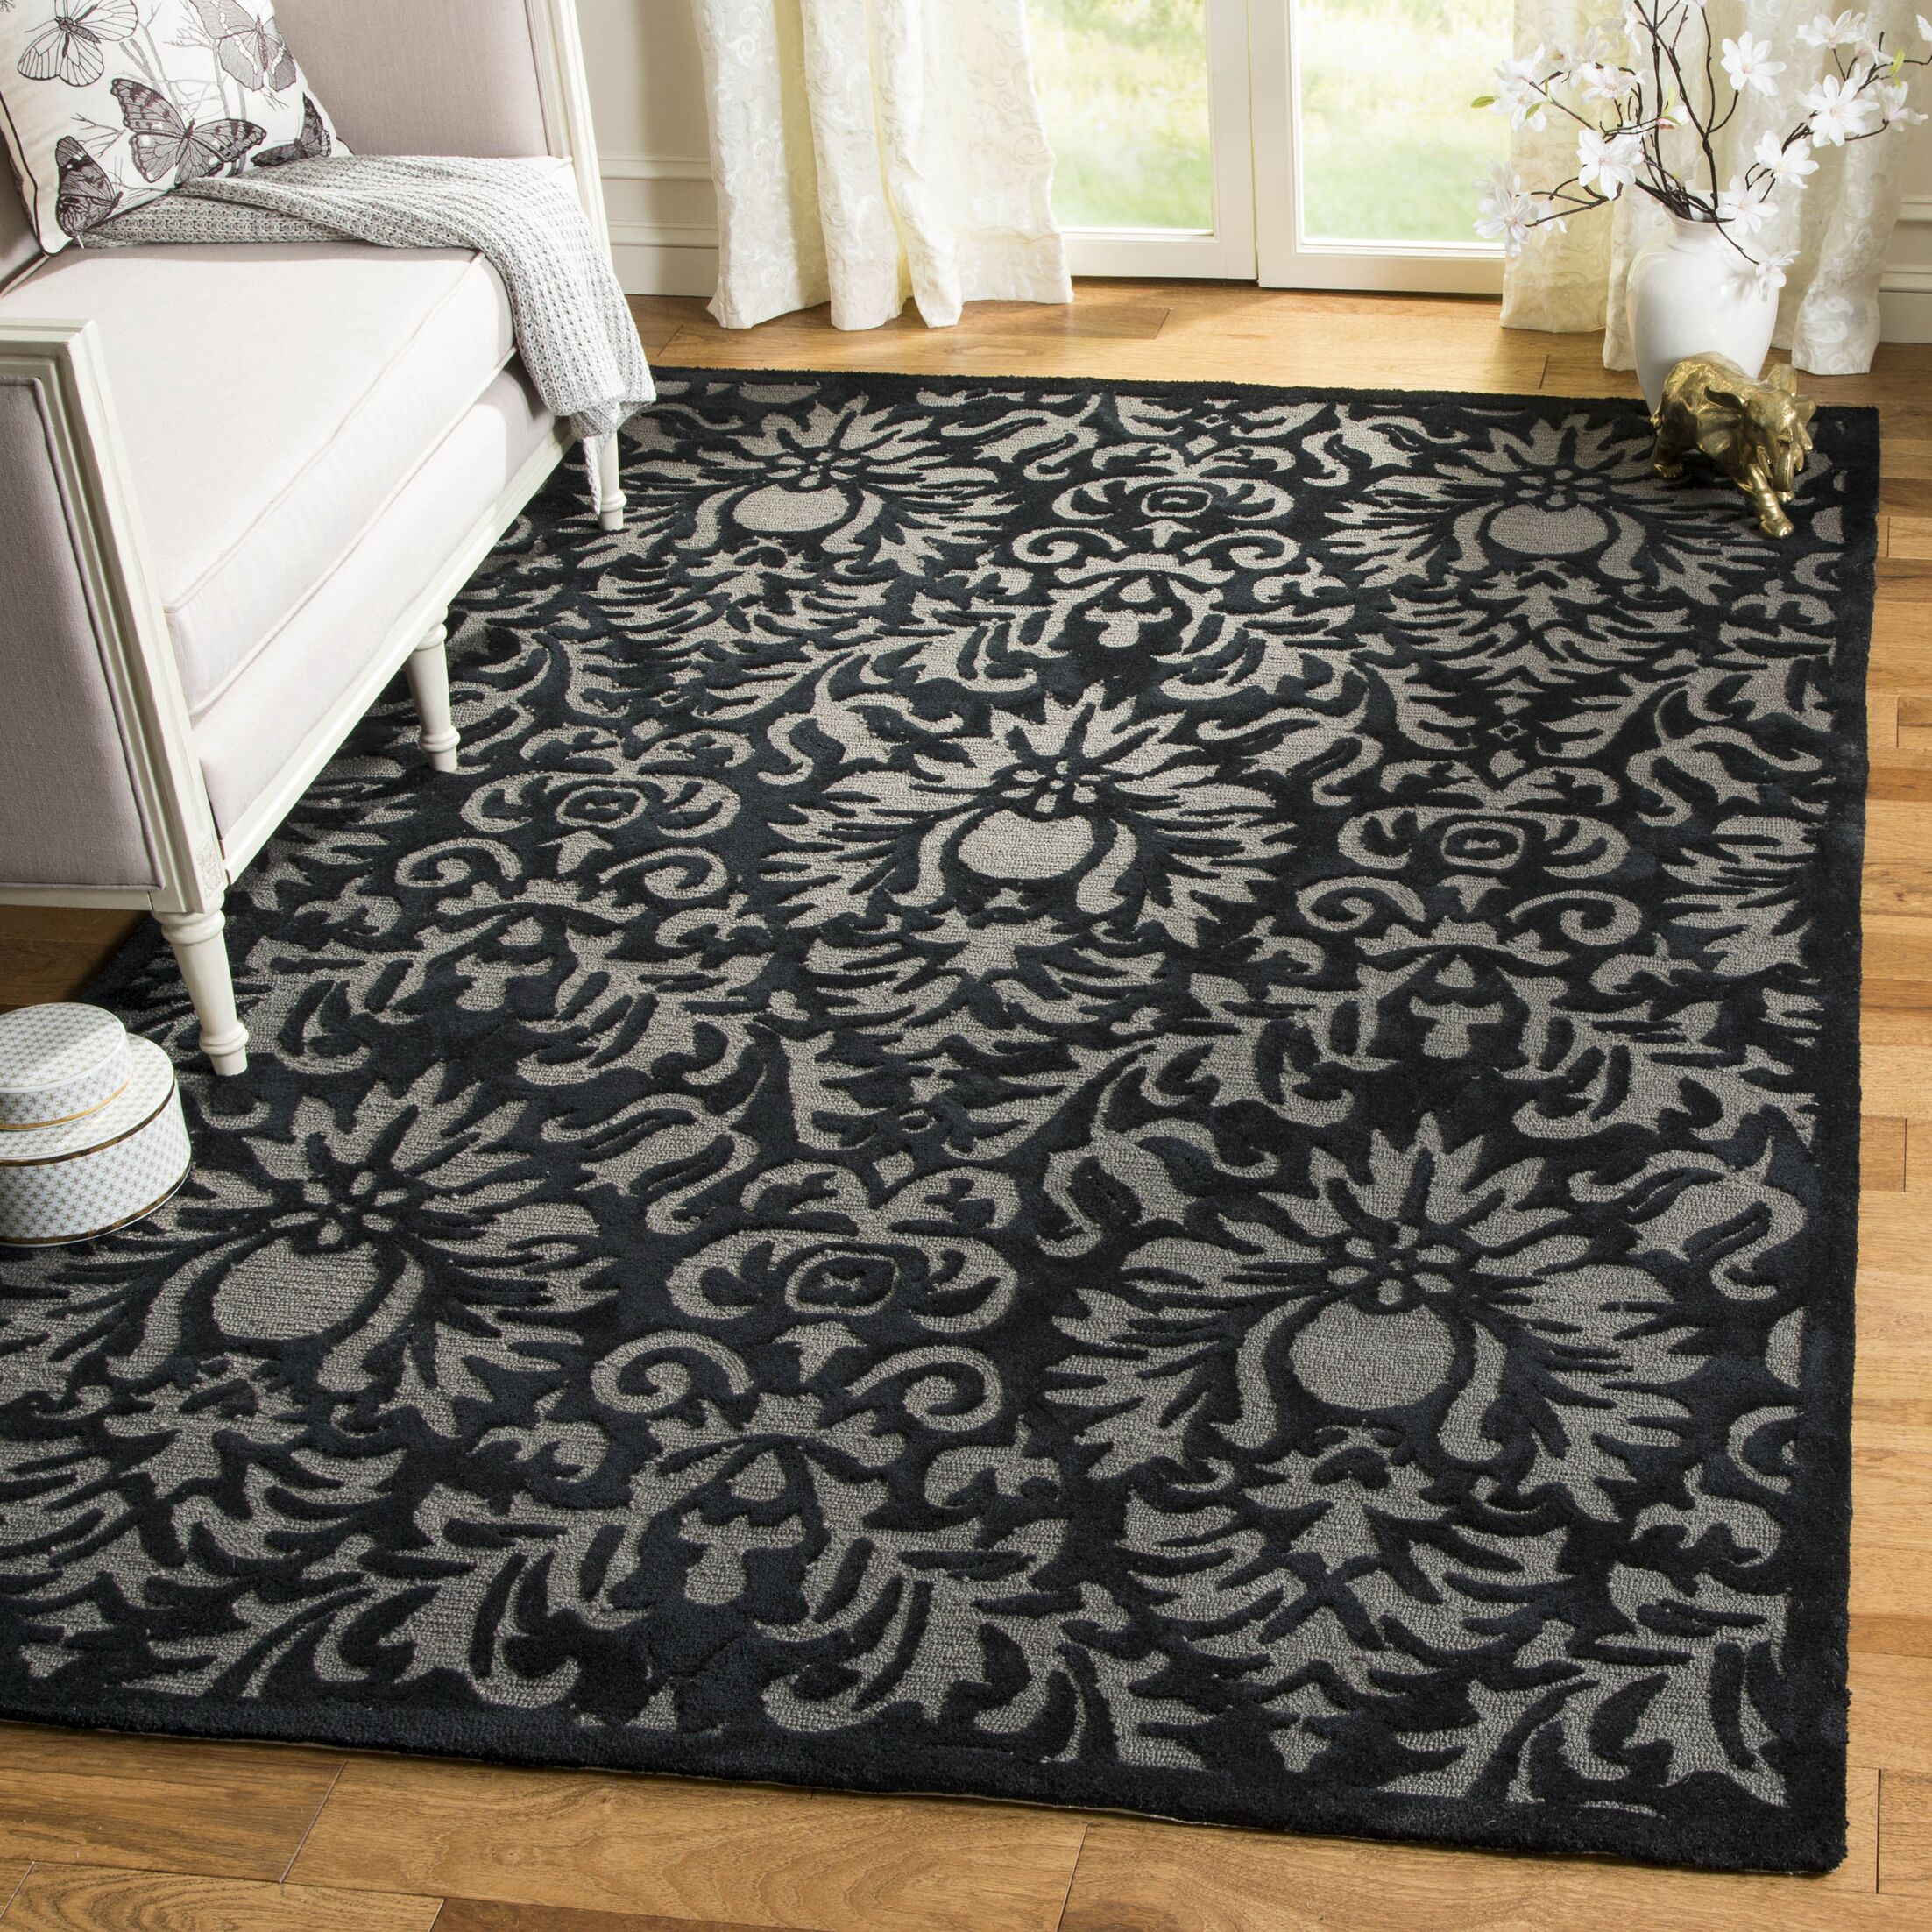 Kuhlman Hand-Hooked Black Area Rug Rug Size: Rectangle 4' x 6'